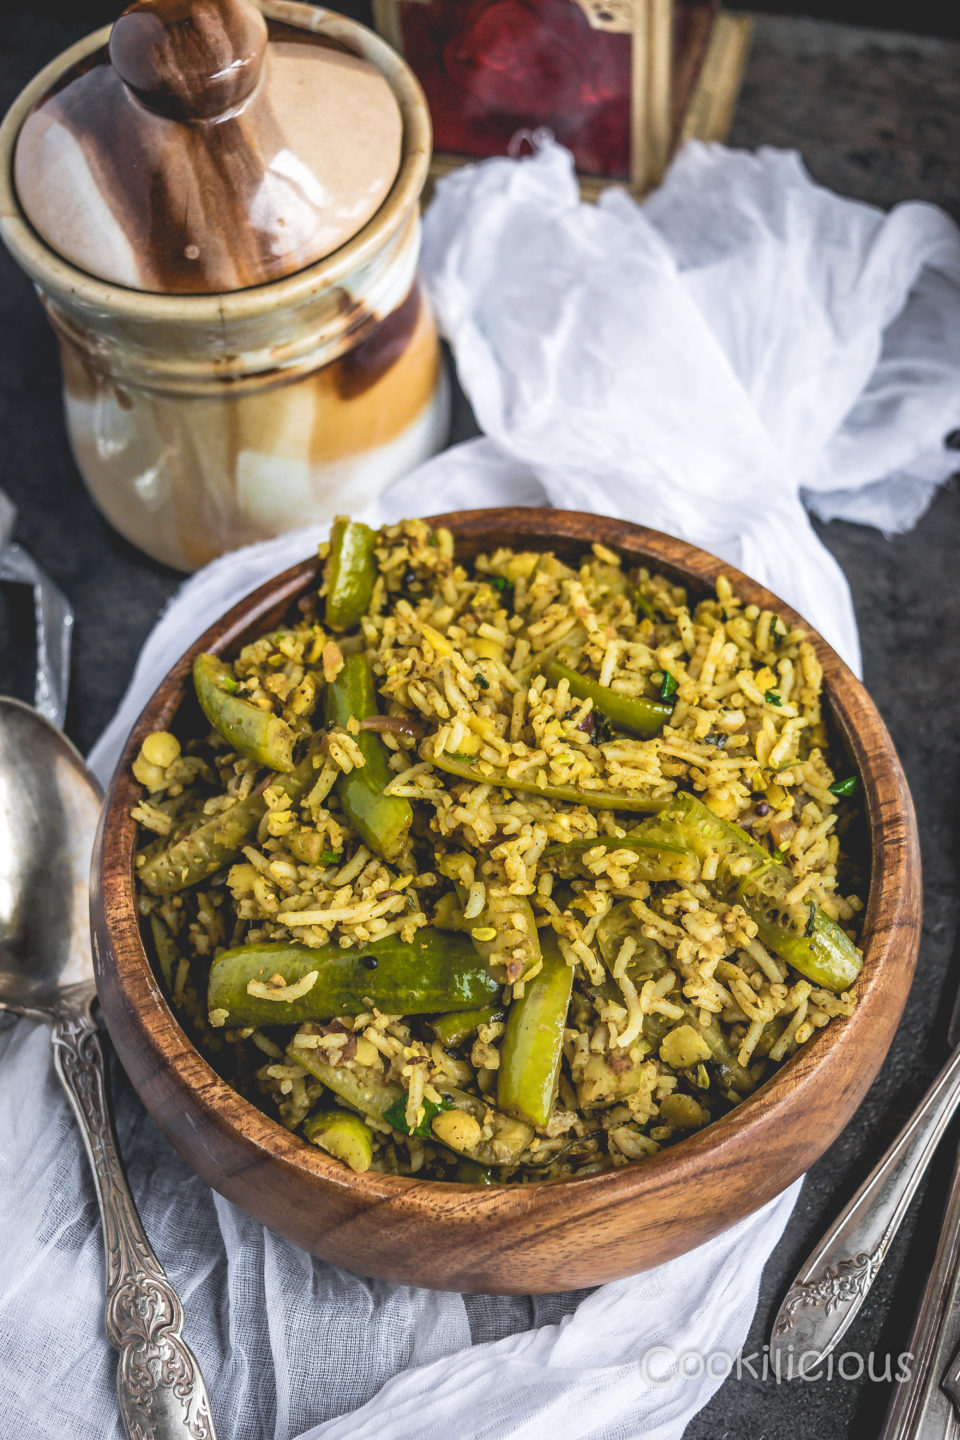 top shot of Tendli Masala Bhaat | Ivy Gourd Masala Rice in a bowl with a pickle jar and spoons in the background